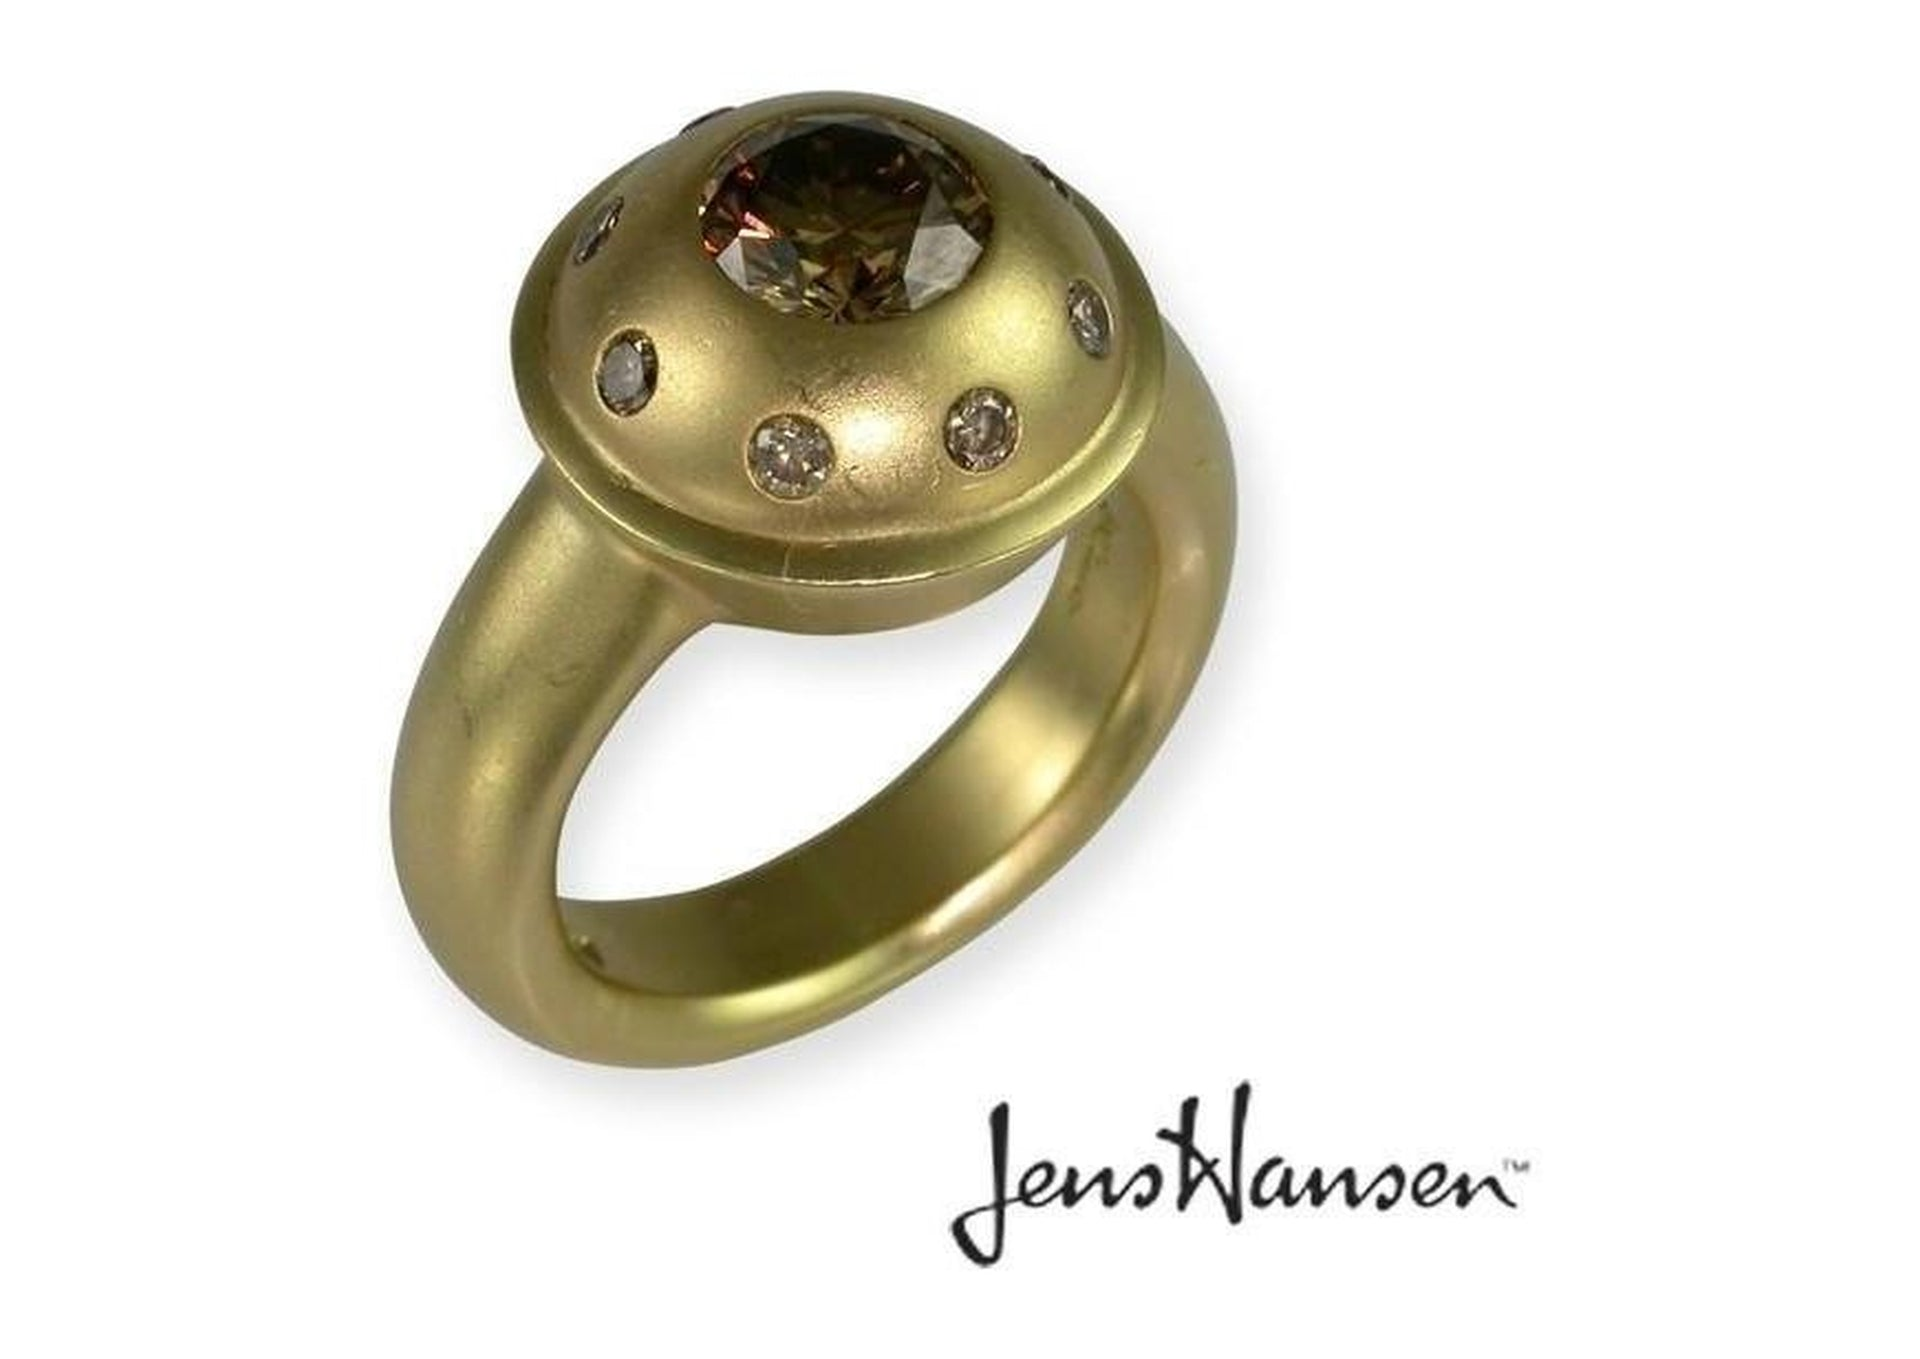 18ct Jens Hansen Ring set with Customers Pendant.   - Jens Hansen